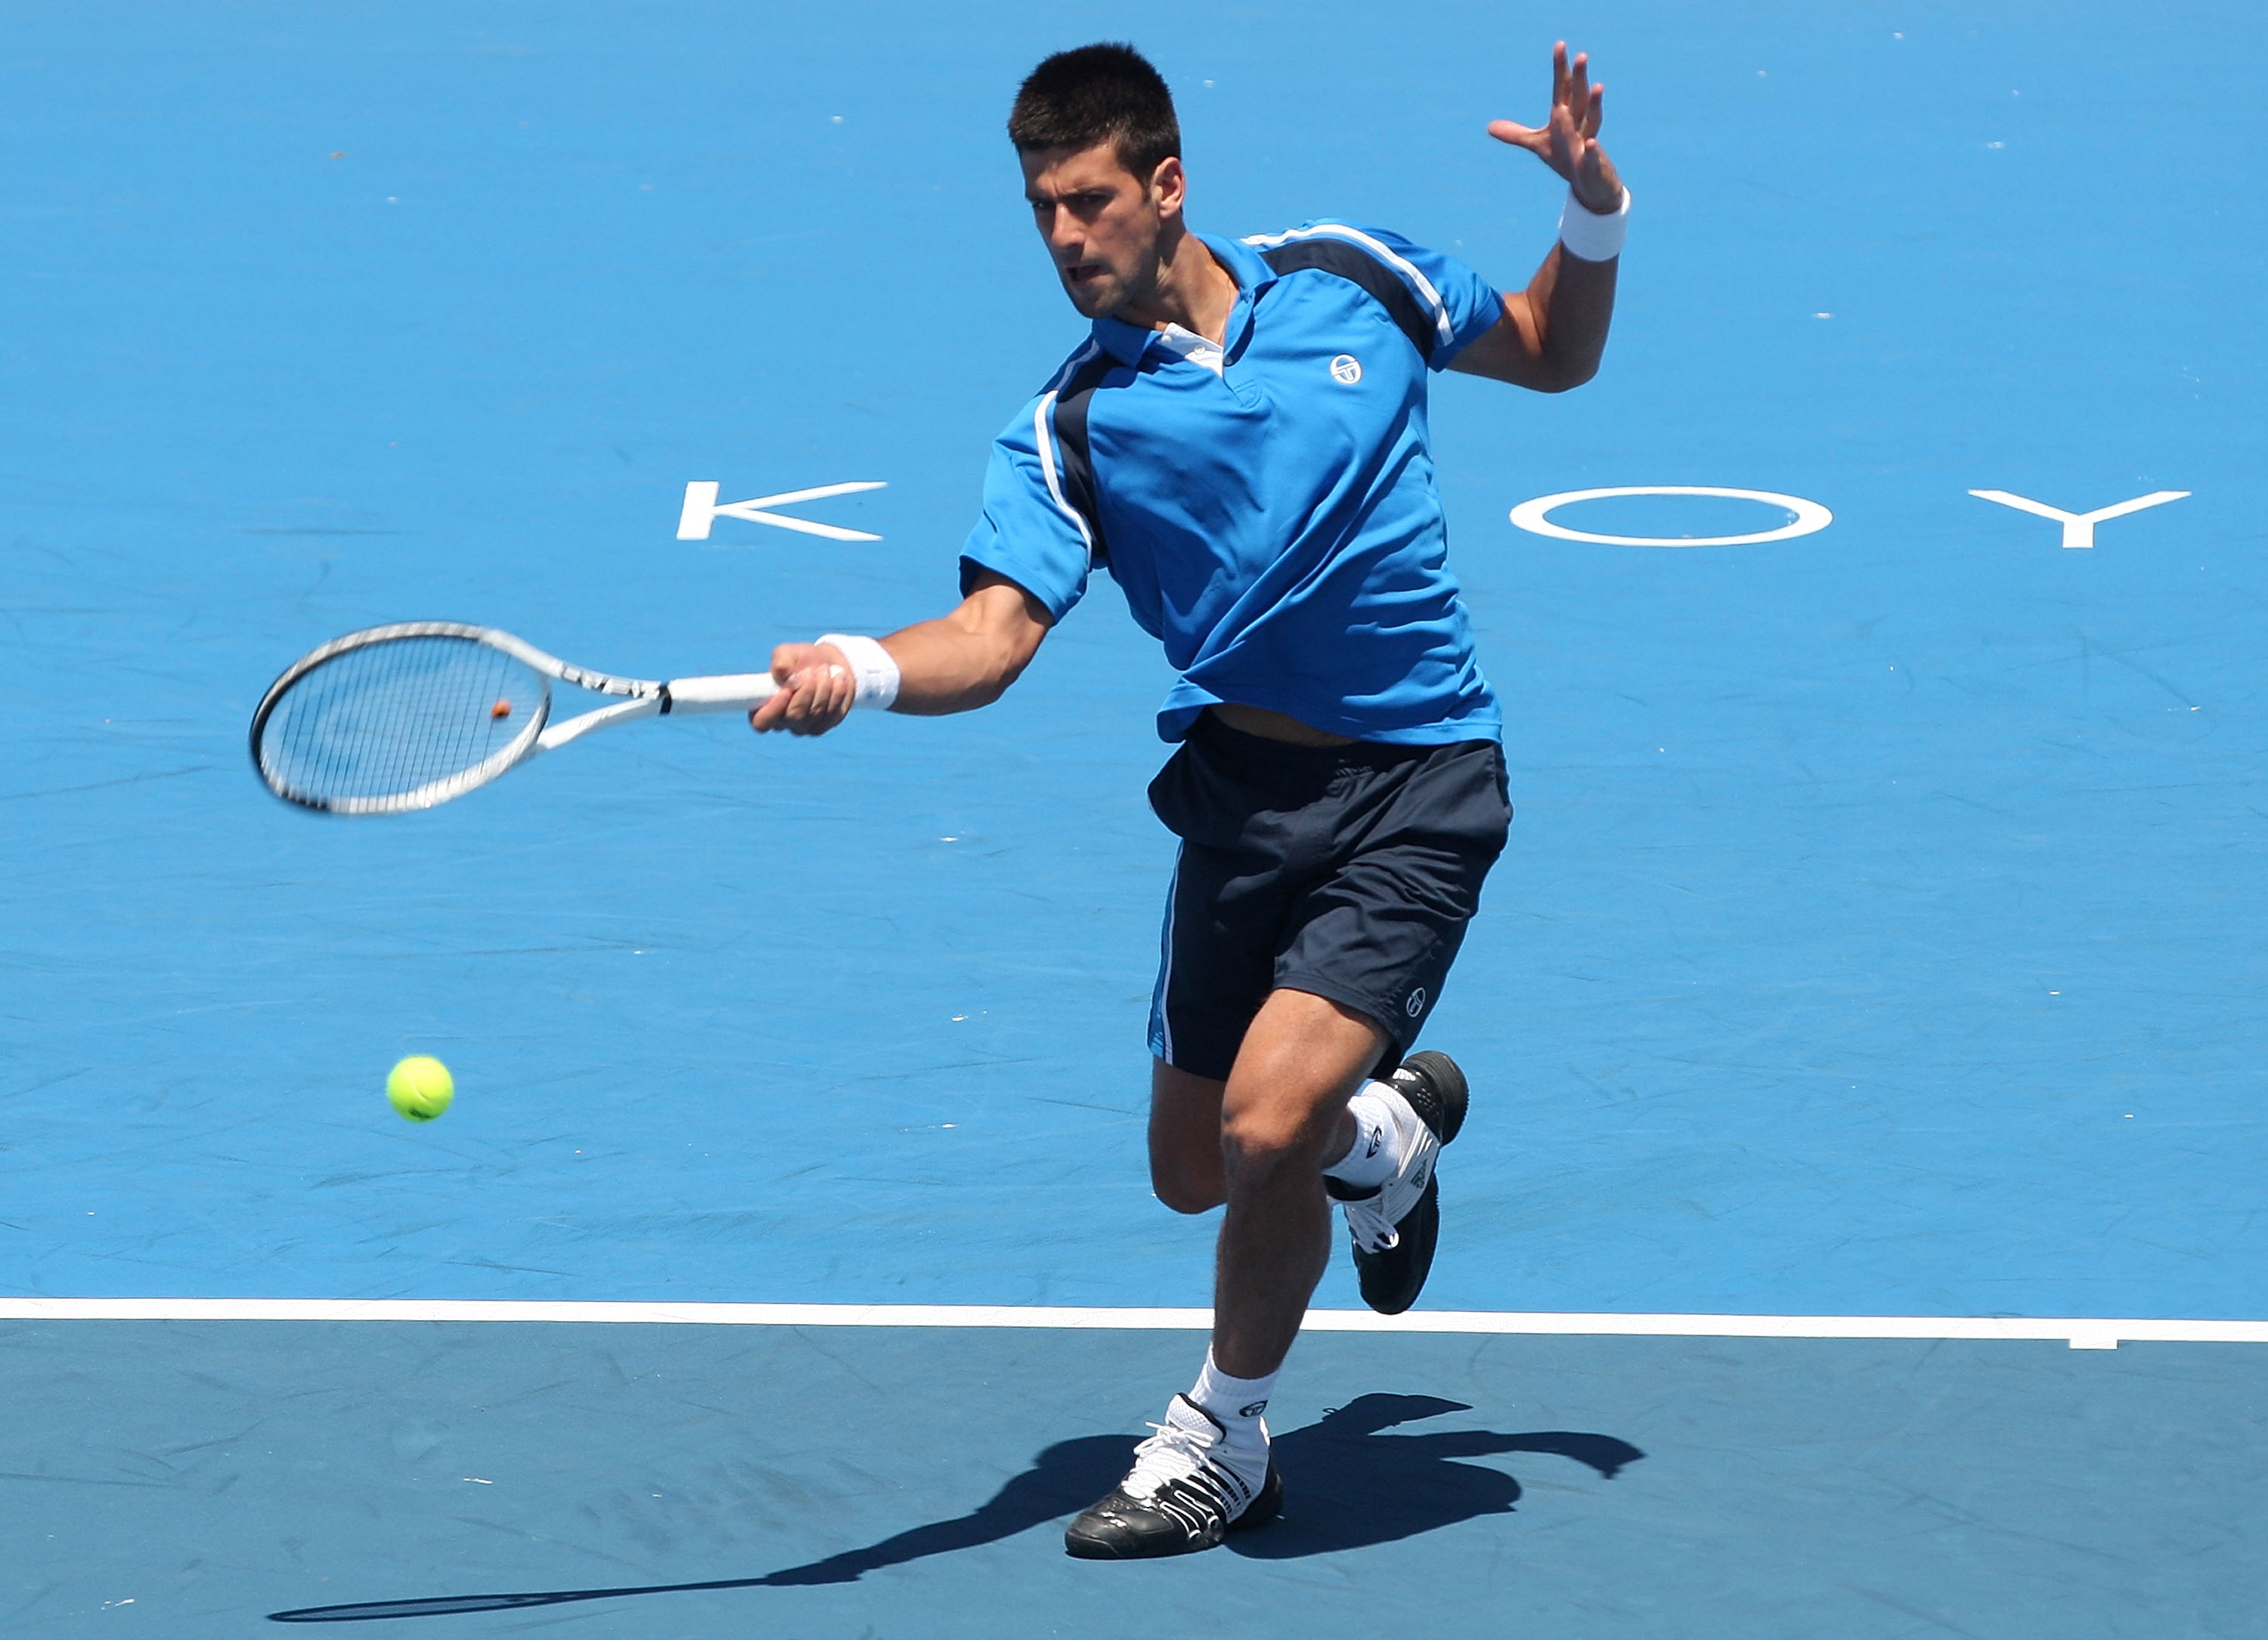 Nole matched the courts in Melbourne and added all-white wristbands.